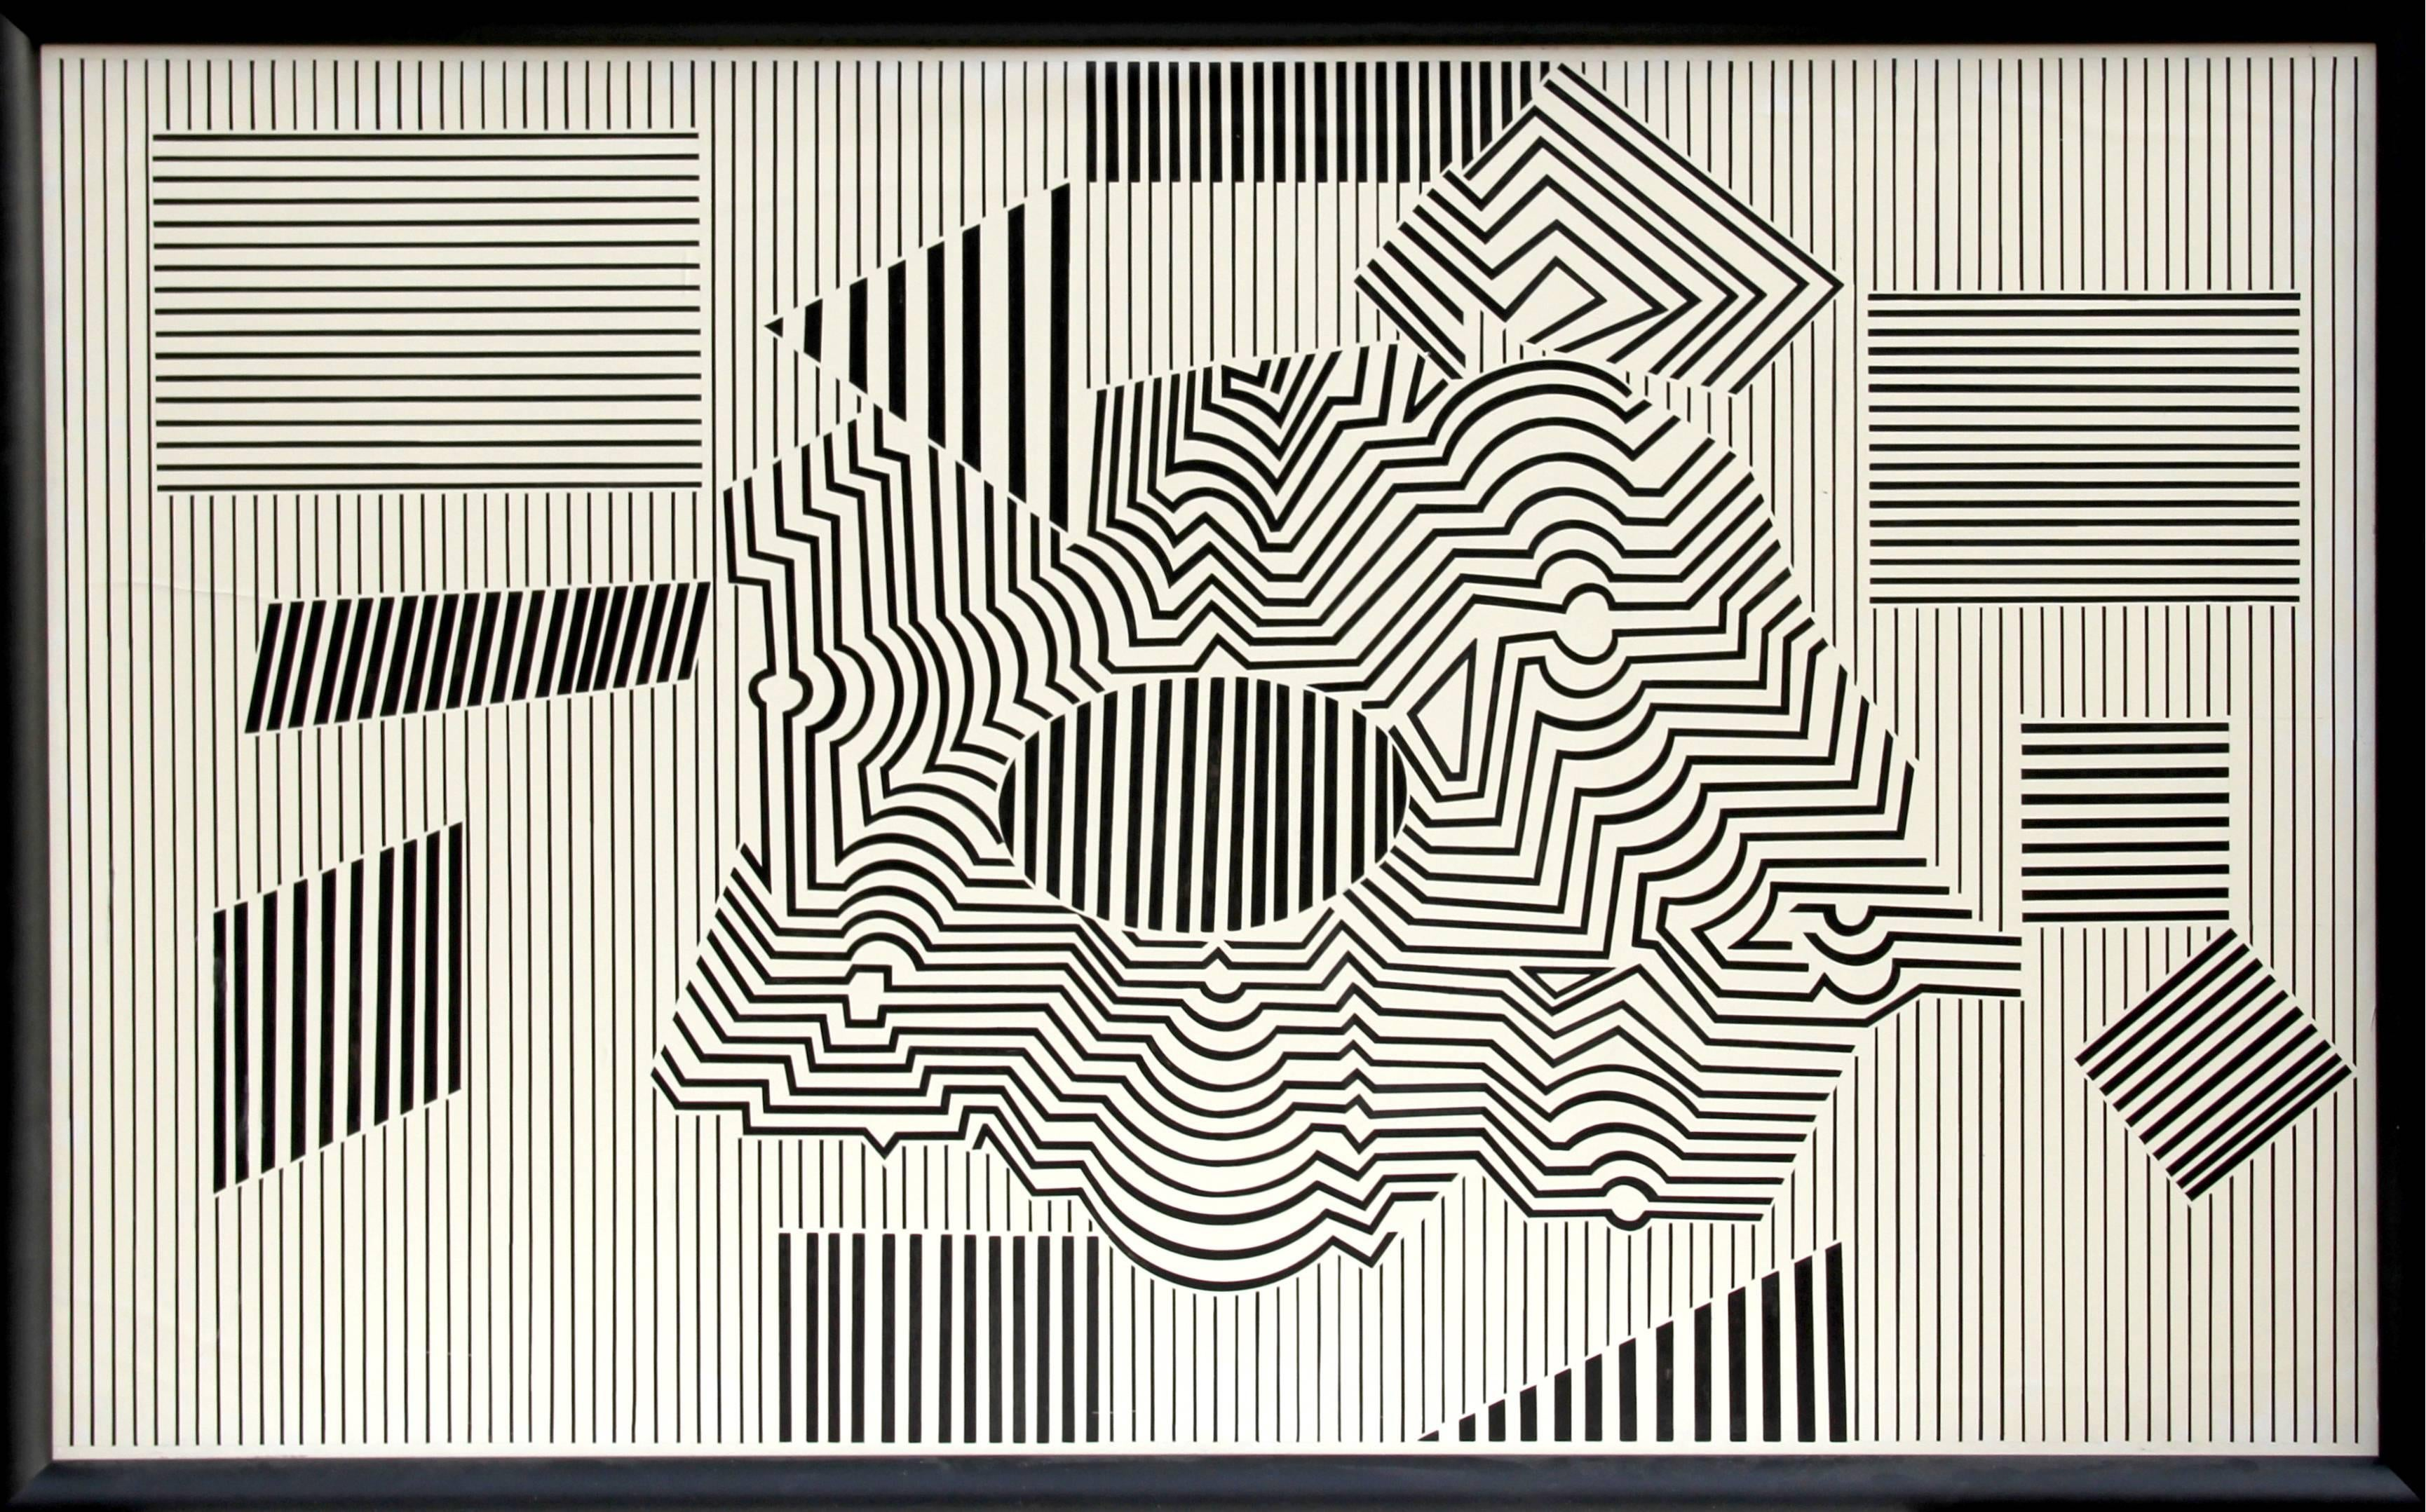 Operenccia, Large OP Art Painting by Victor Vasarely